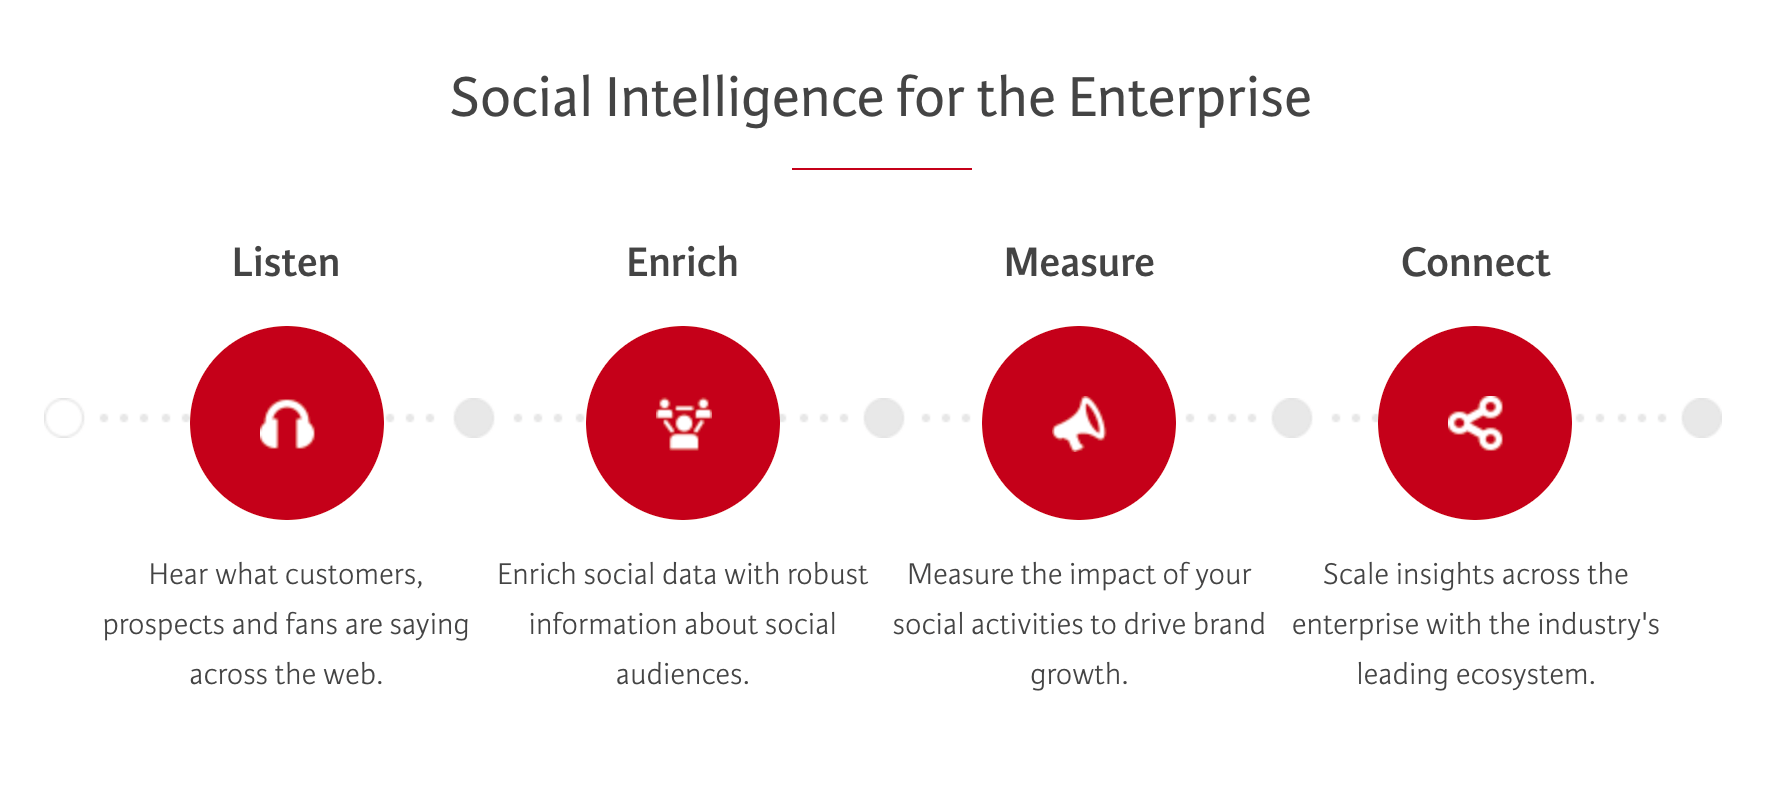 Social Intelligence for the enterprise image